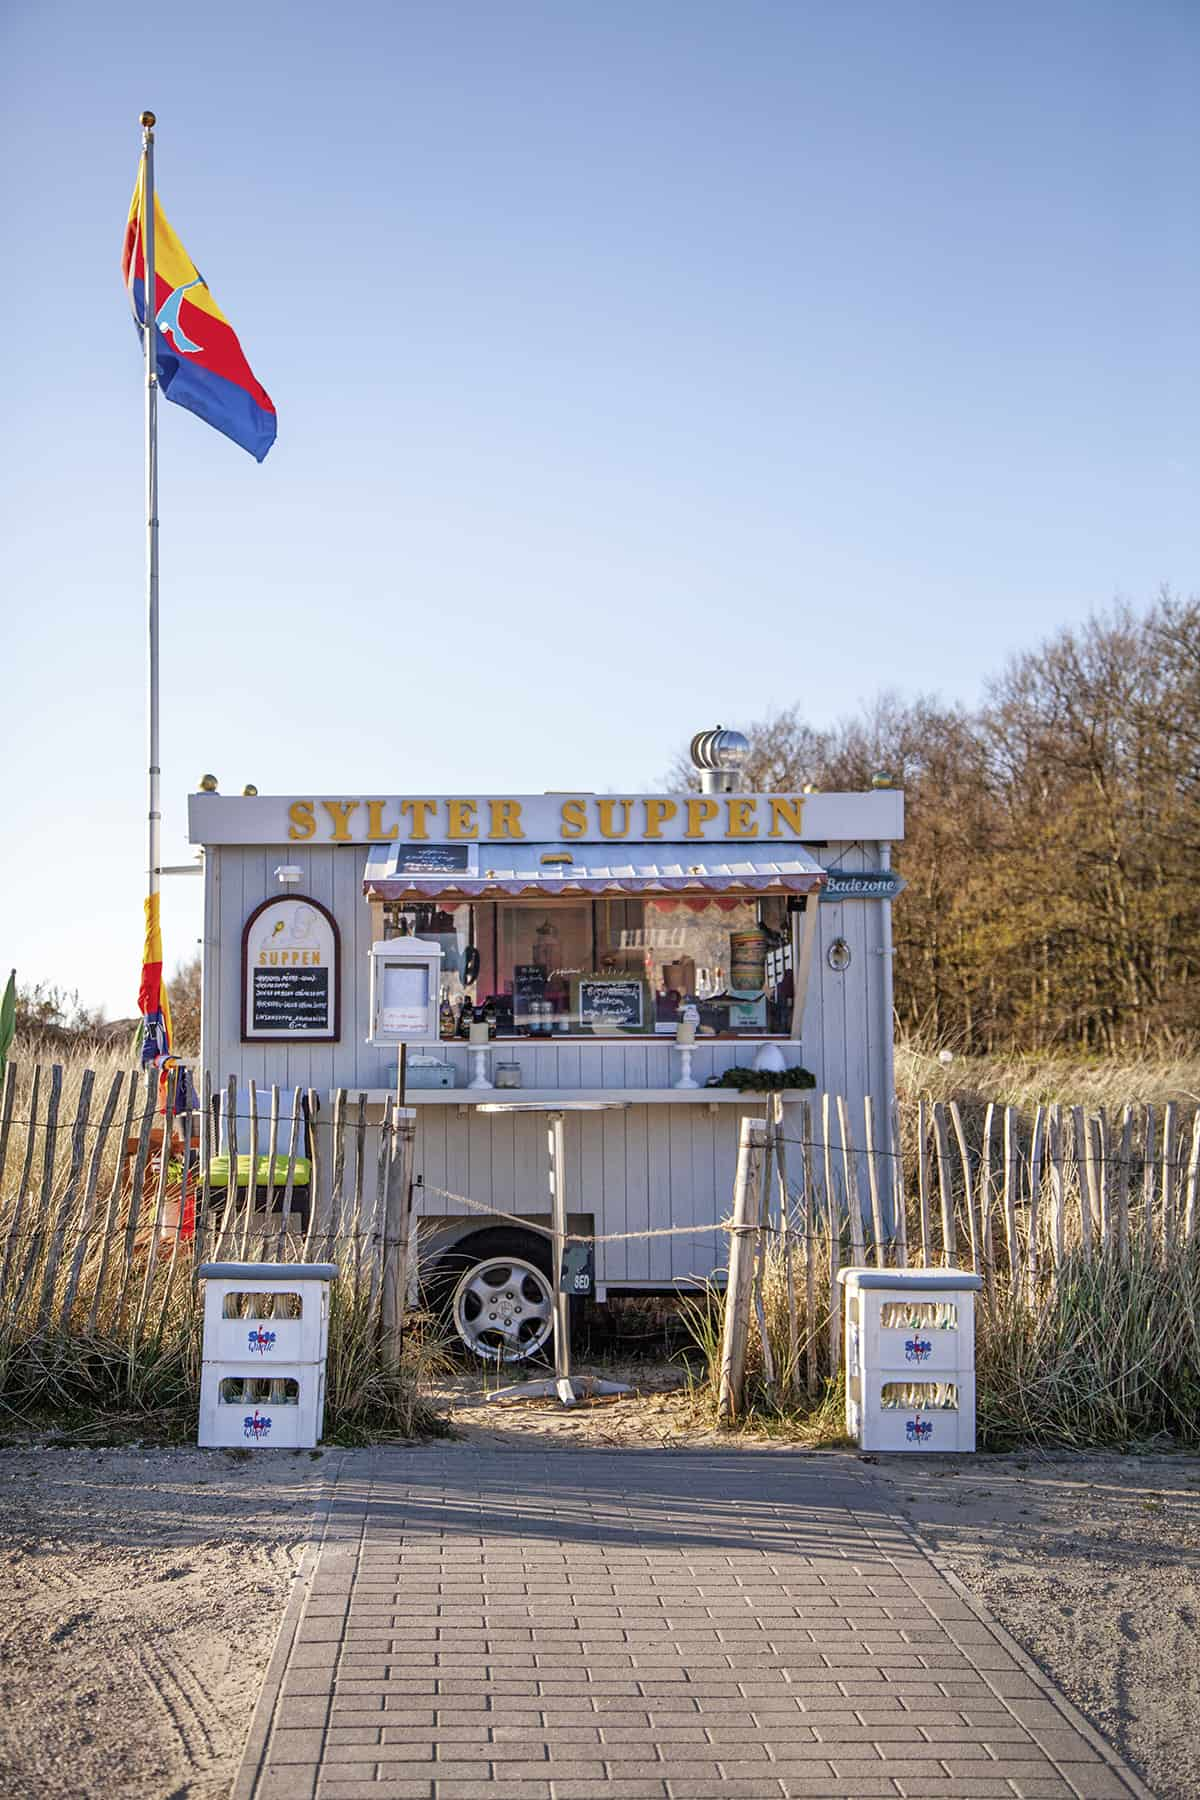 Sylter Suppen Wagen List auf Sylt